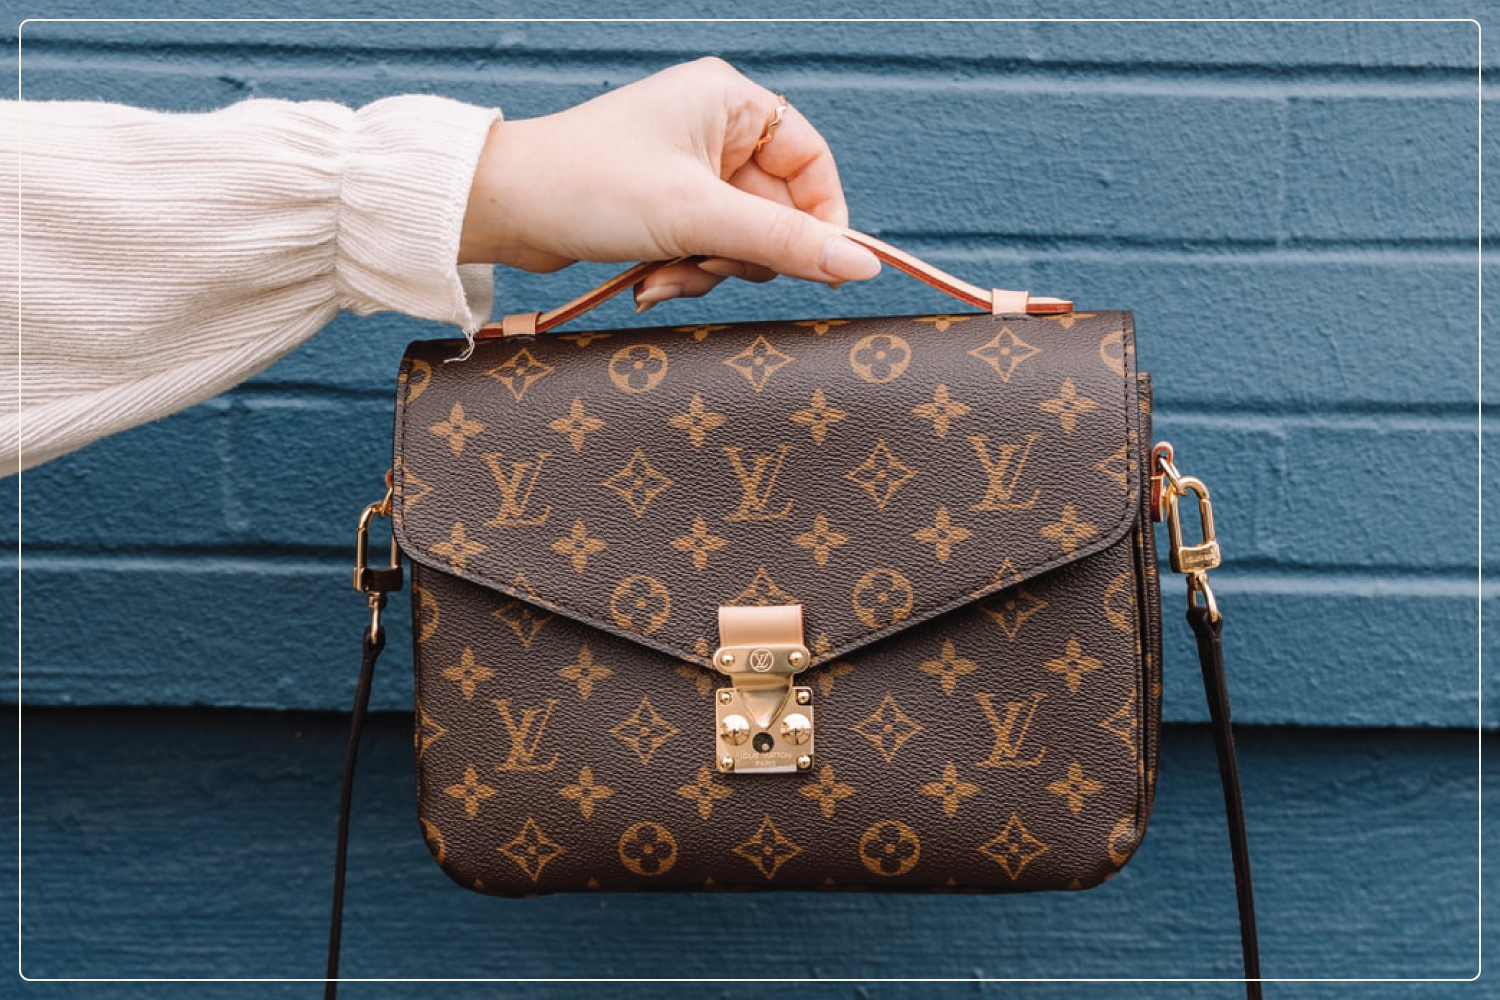 AAA Handbags: One Stop Shop for Louis Vuitton Lovers